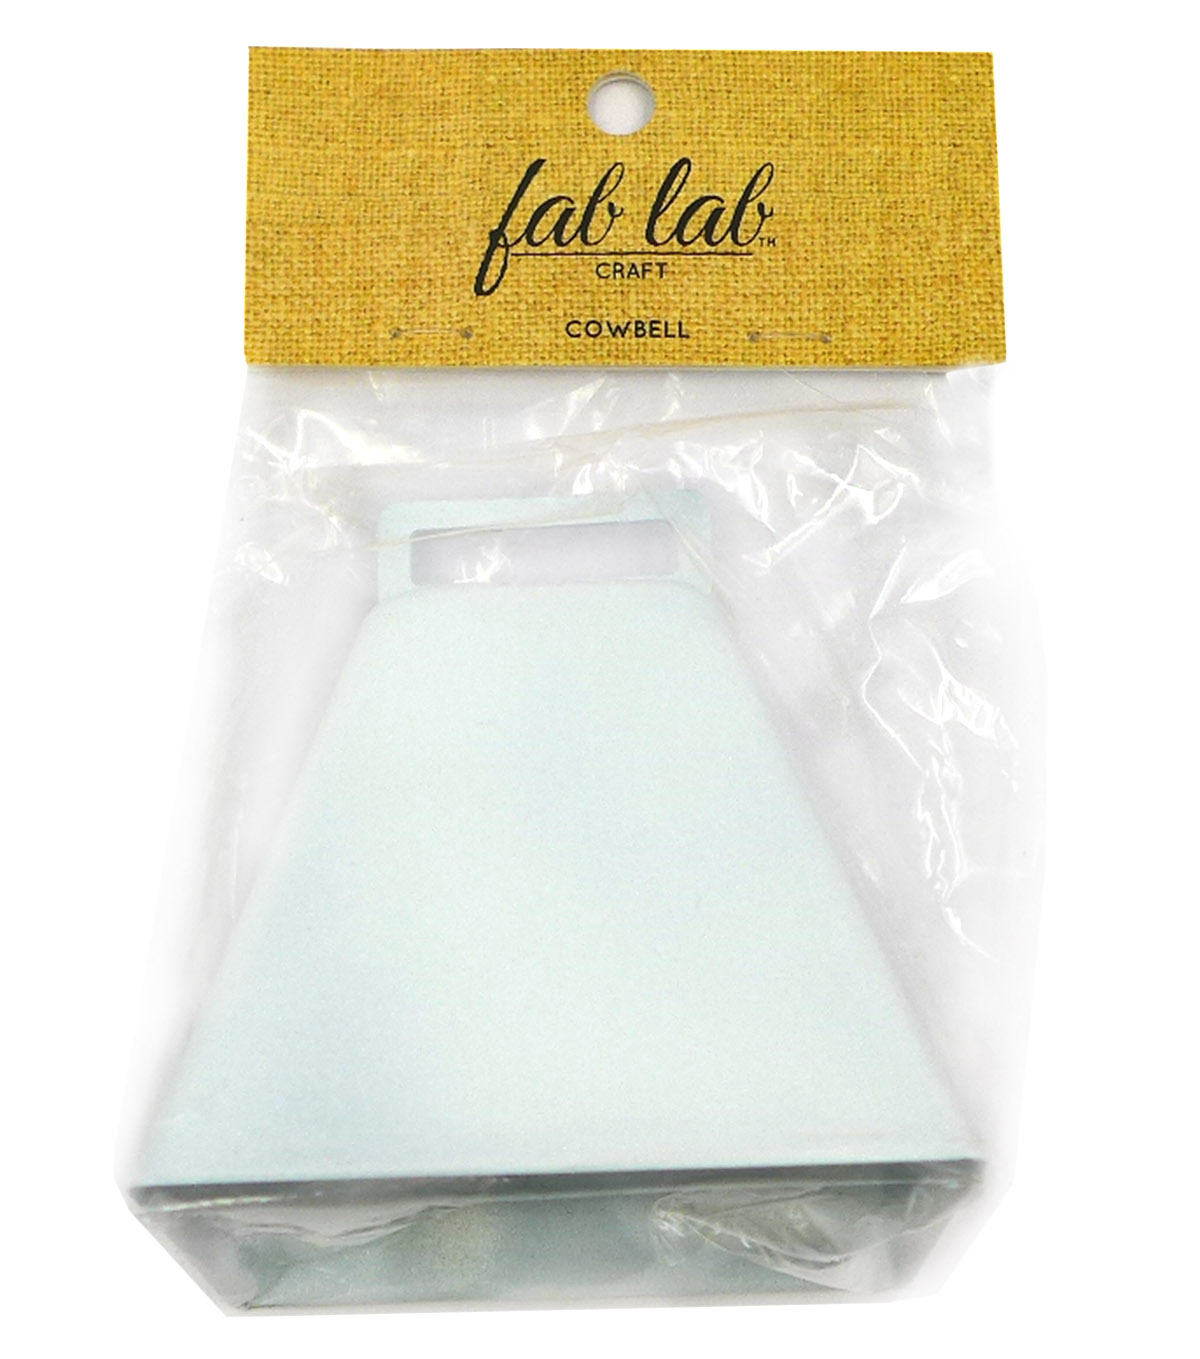 3 Inch White Cowbell Joann